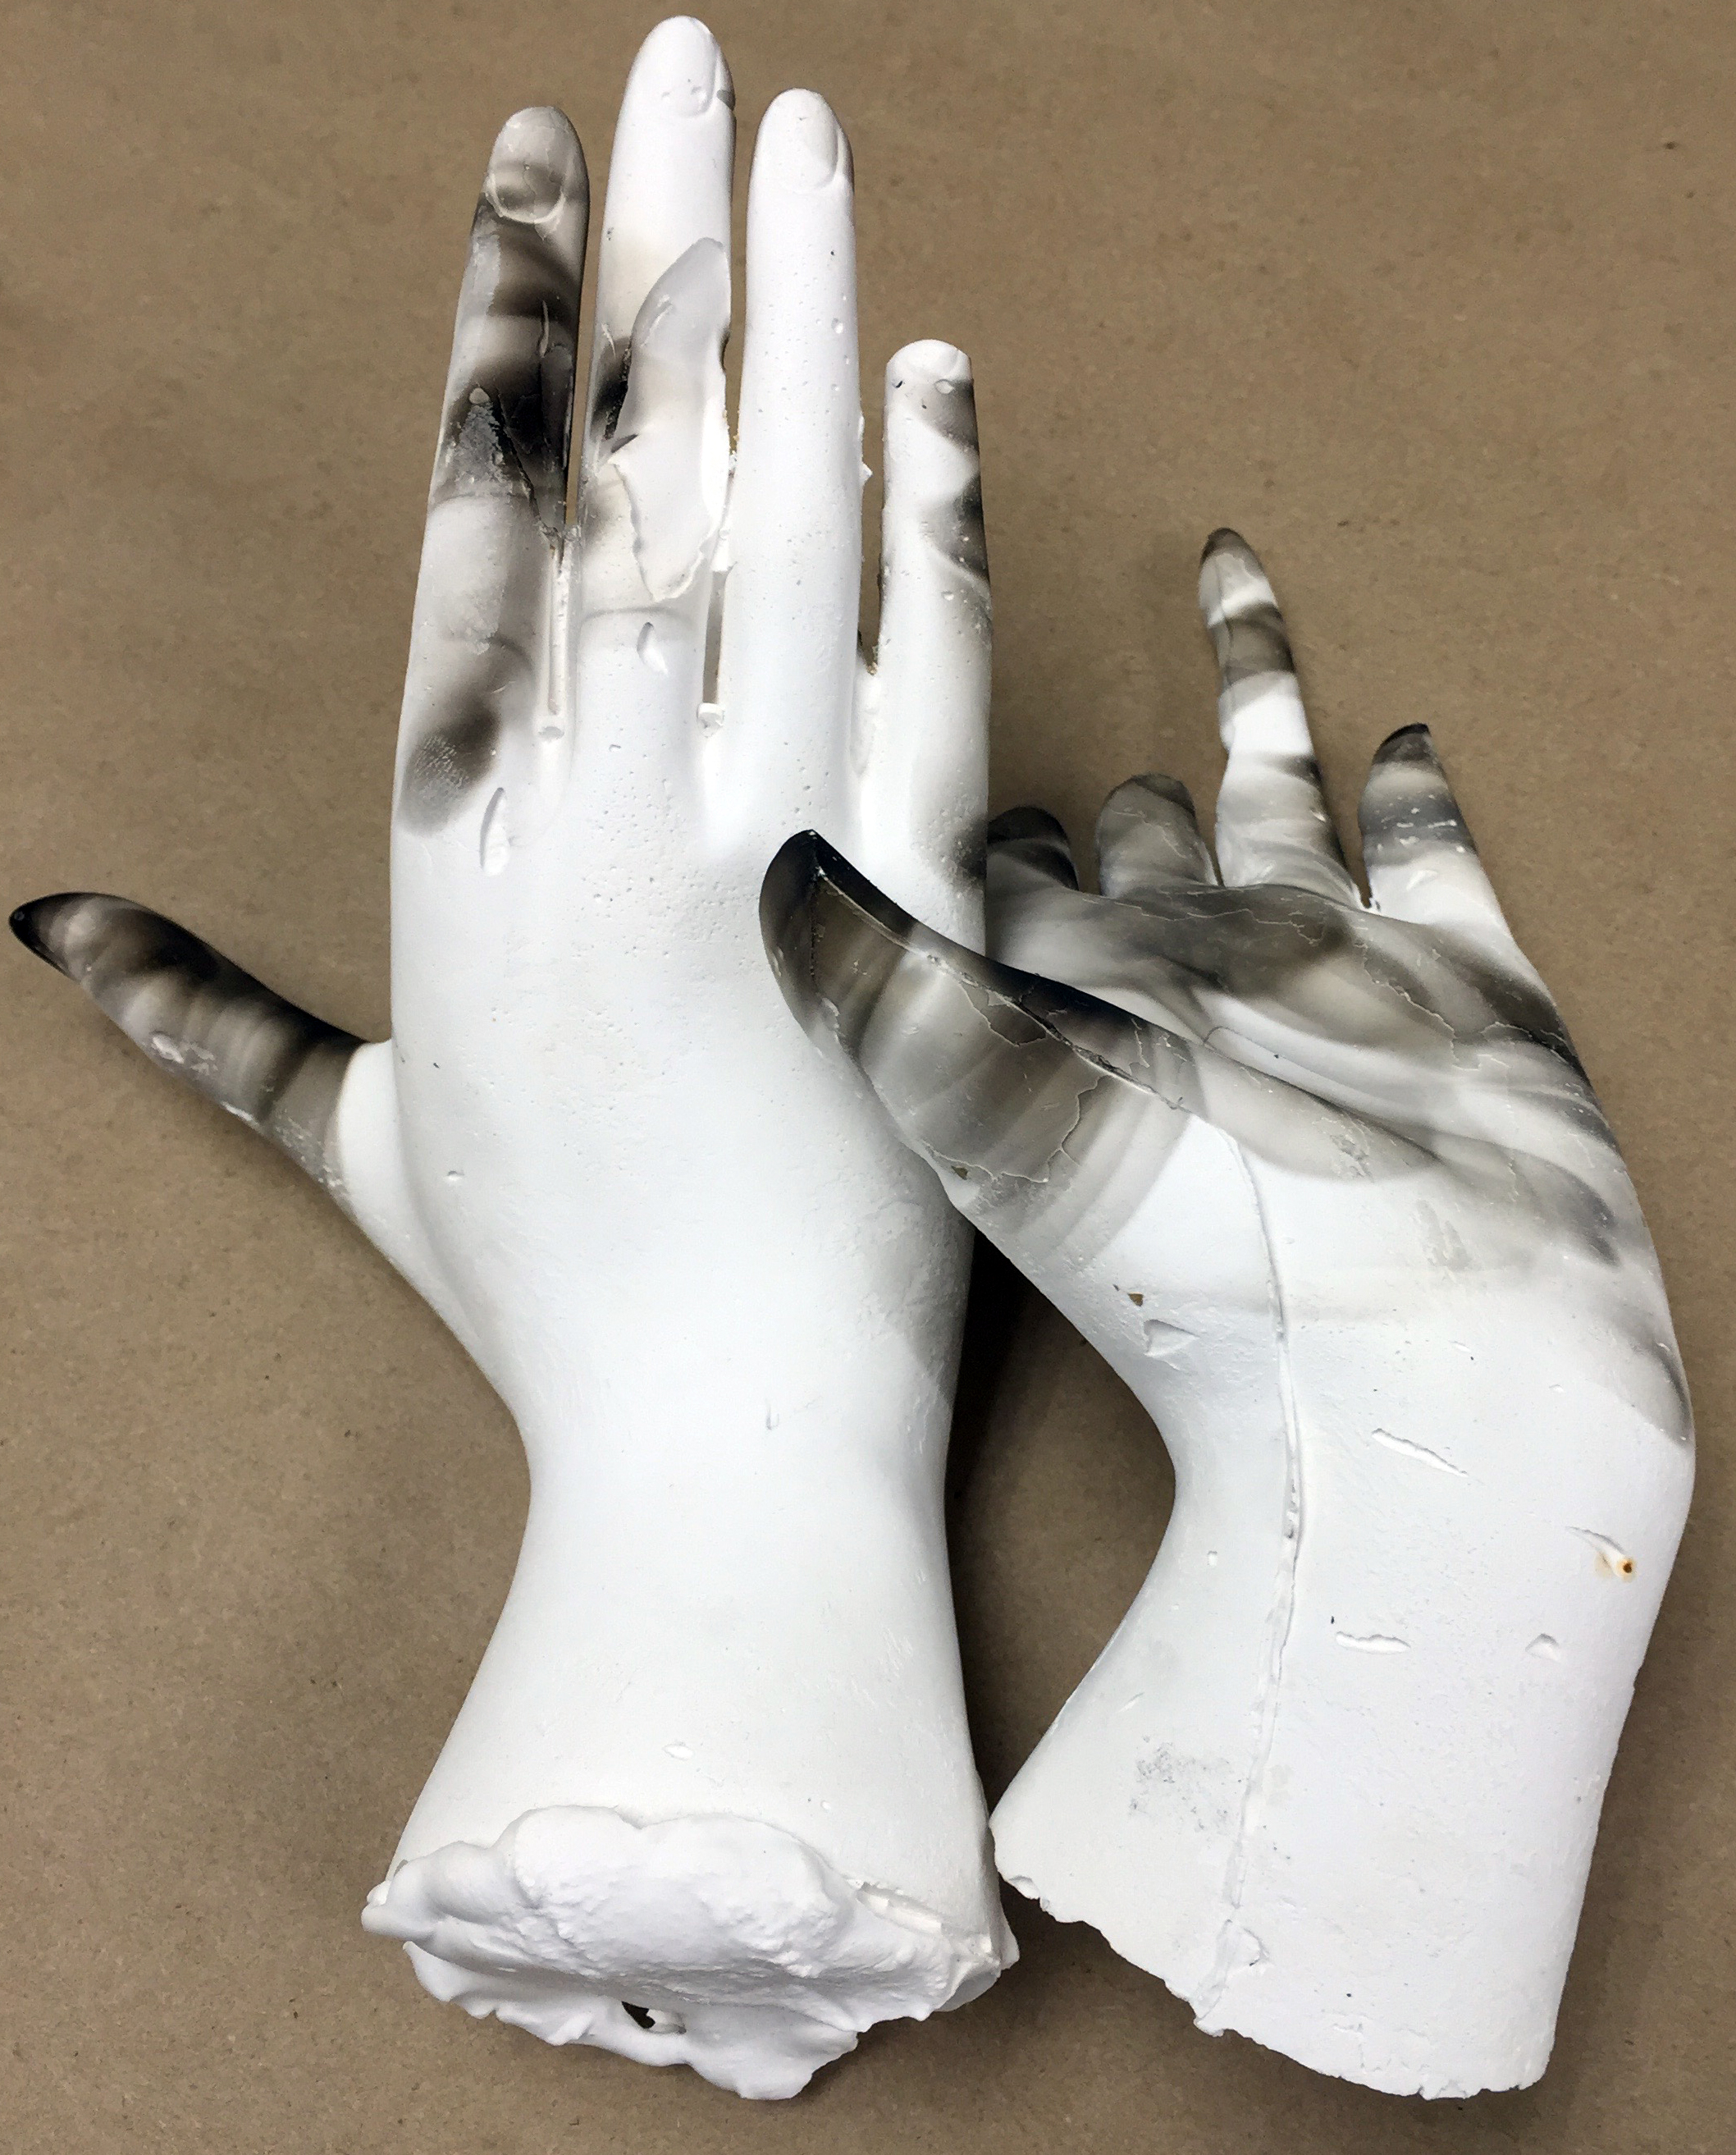 Plaster hands with smoke